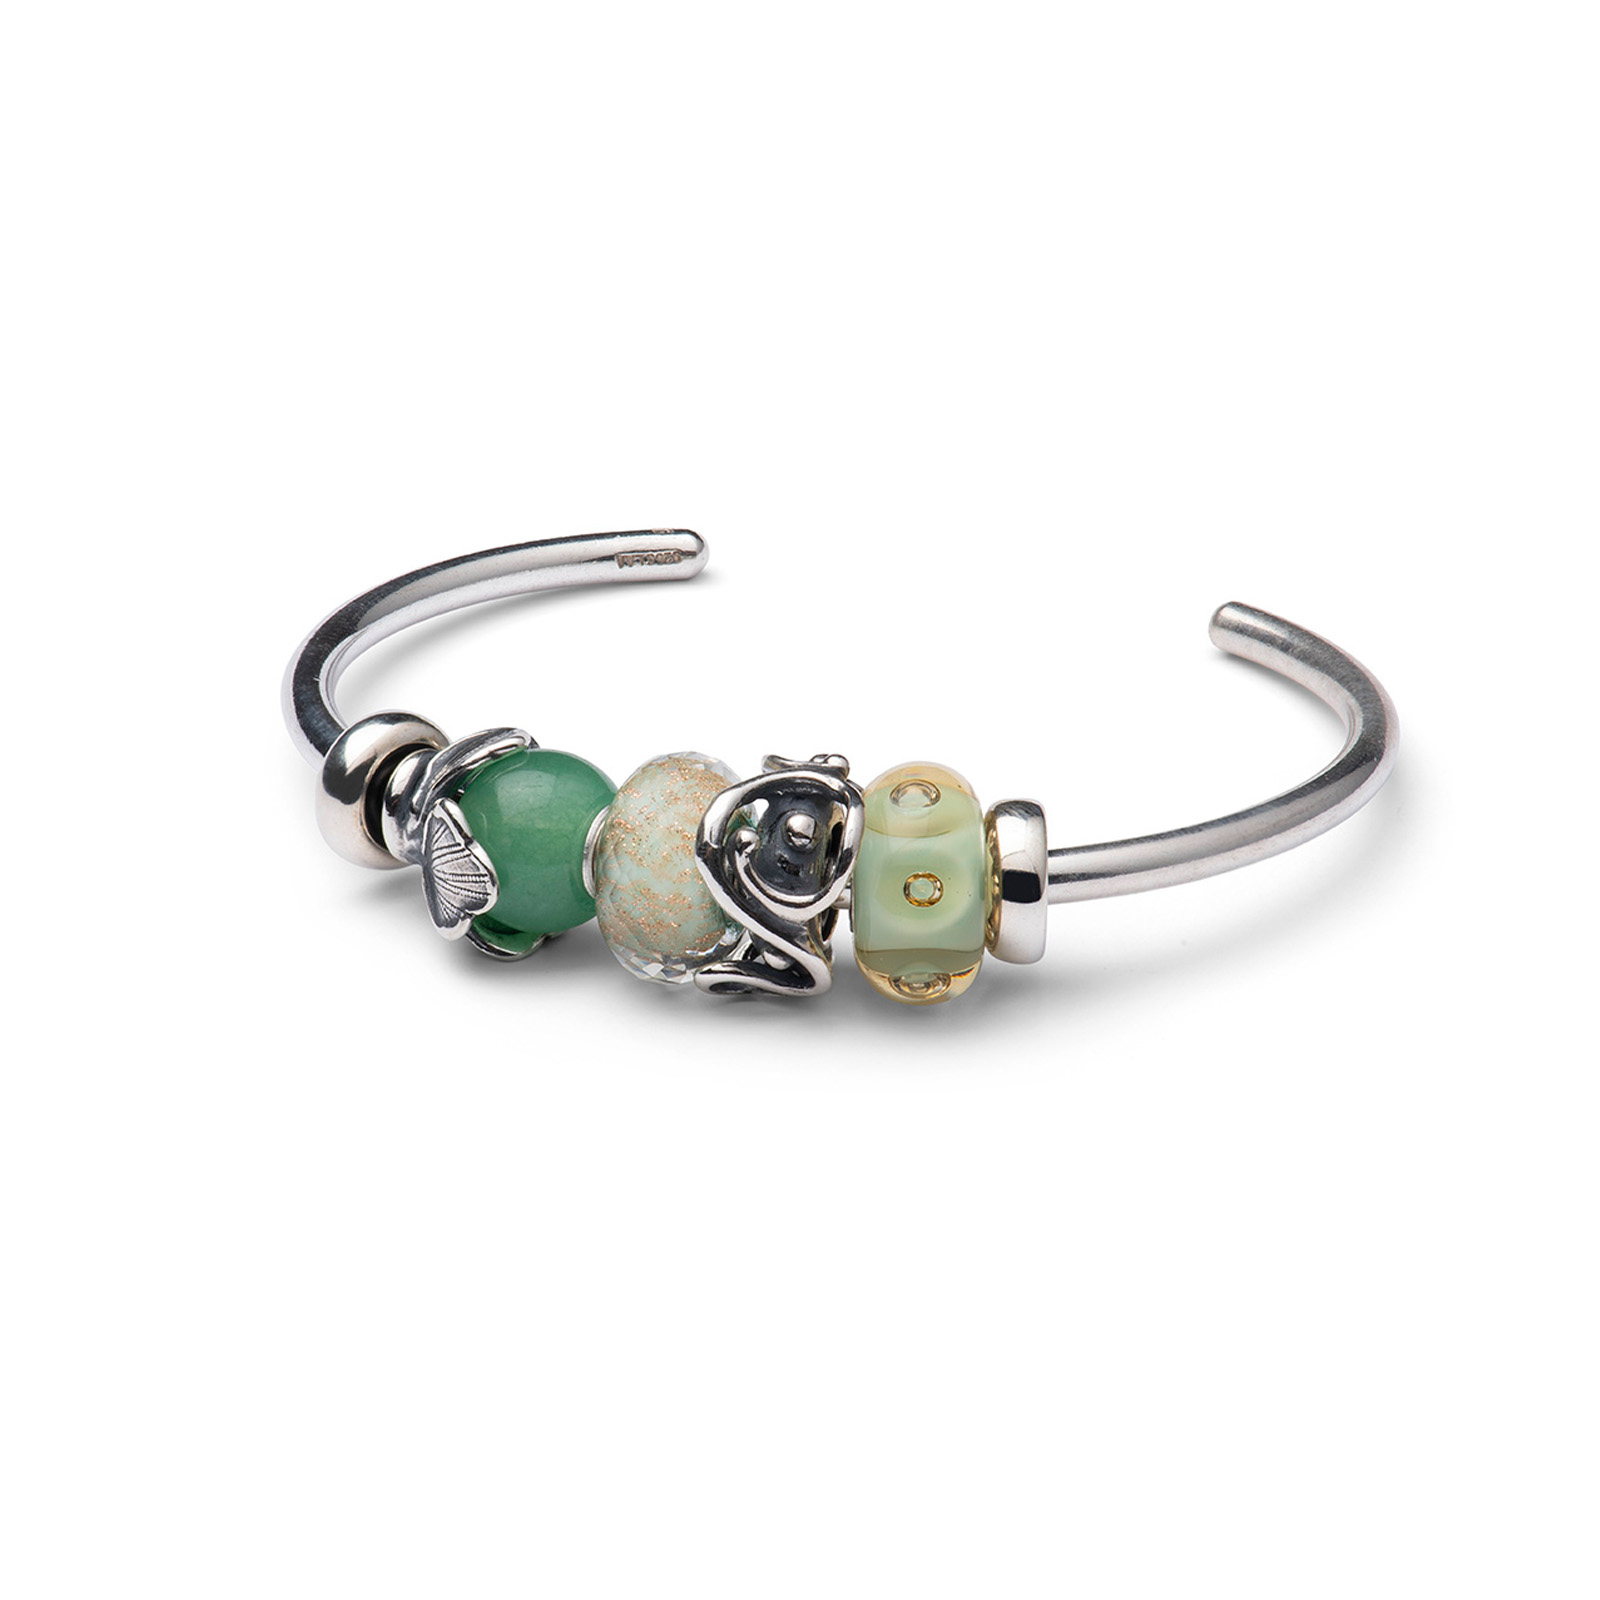 Trollbeads - New Wisdom Bangle C